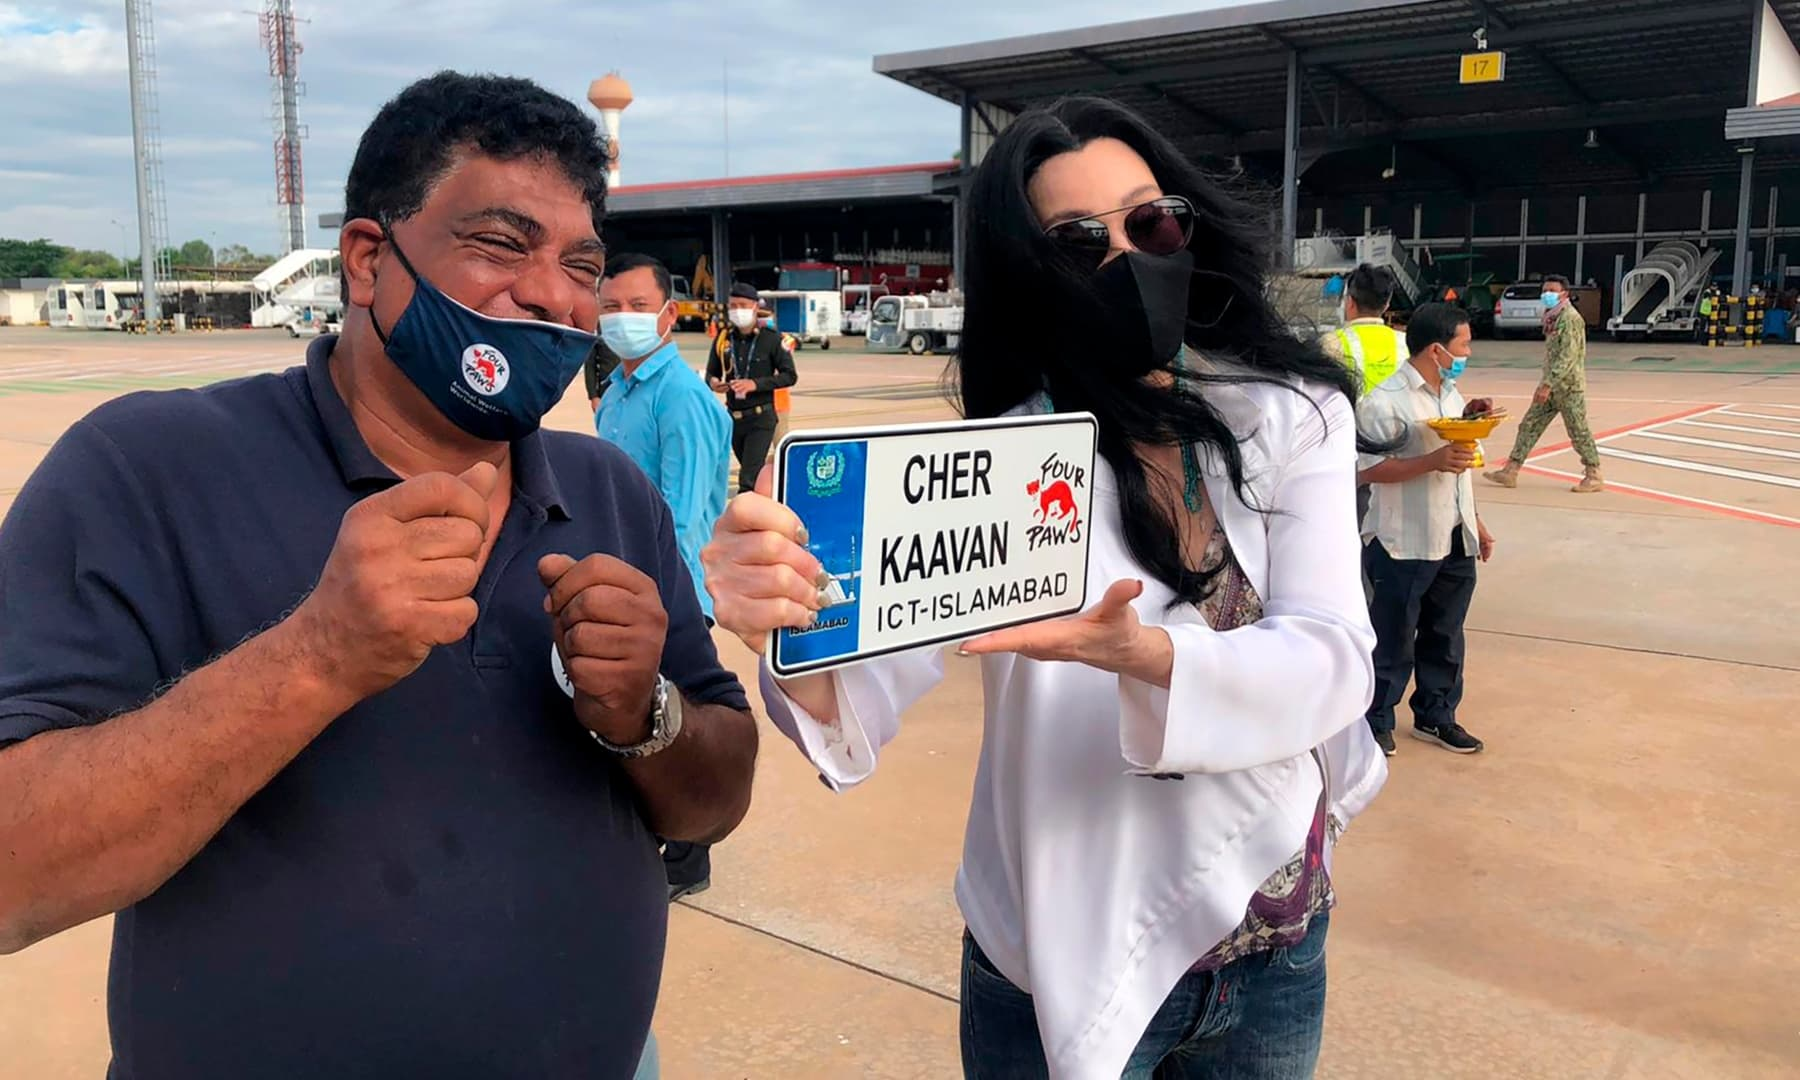 US singer and actress Cher, right, holds a vanity car plate while posing for a photograph with Dr Amir Khalil, a veterinarian from Four Paws upon arrival of Kaavan from Pakistan, at the Siem Reap International Airport, Cambodia, Monday. — AP